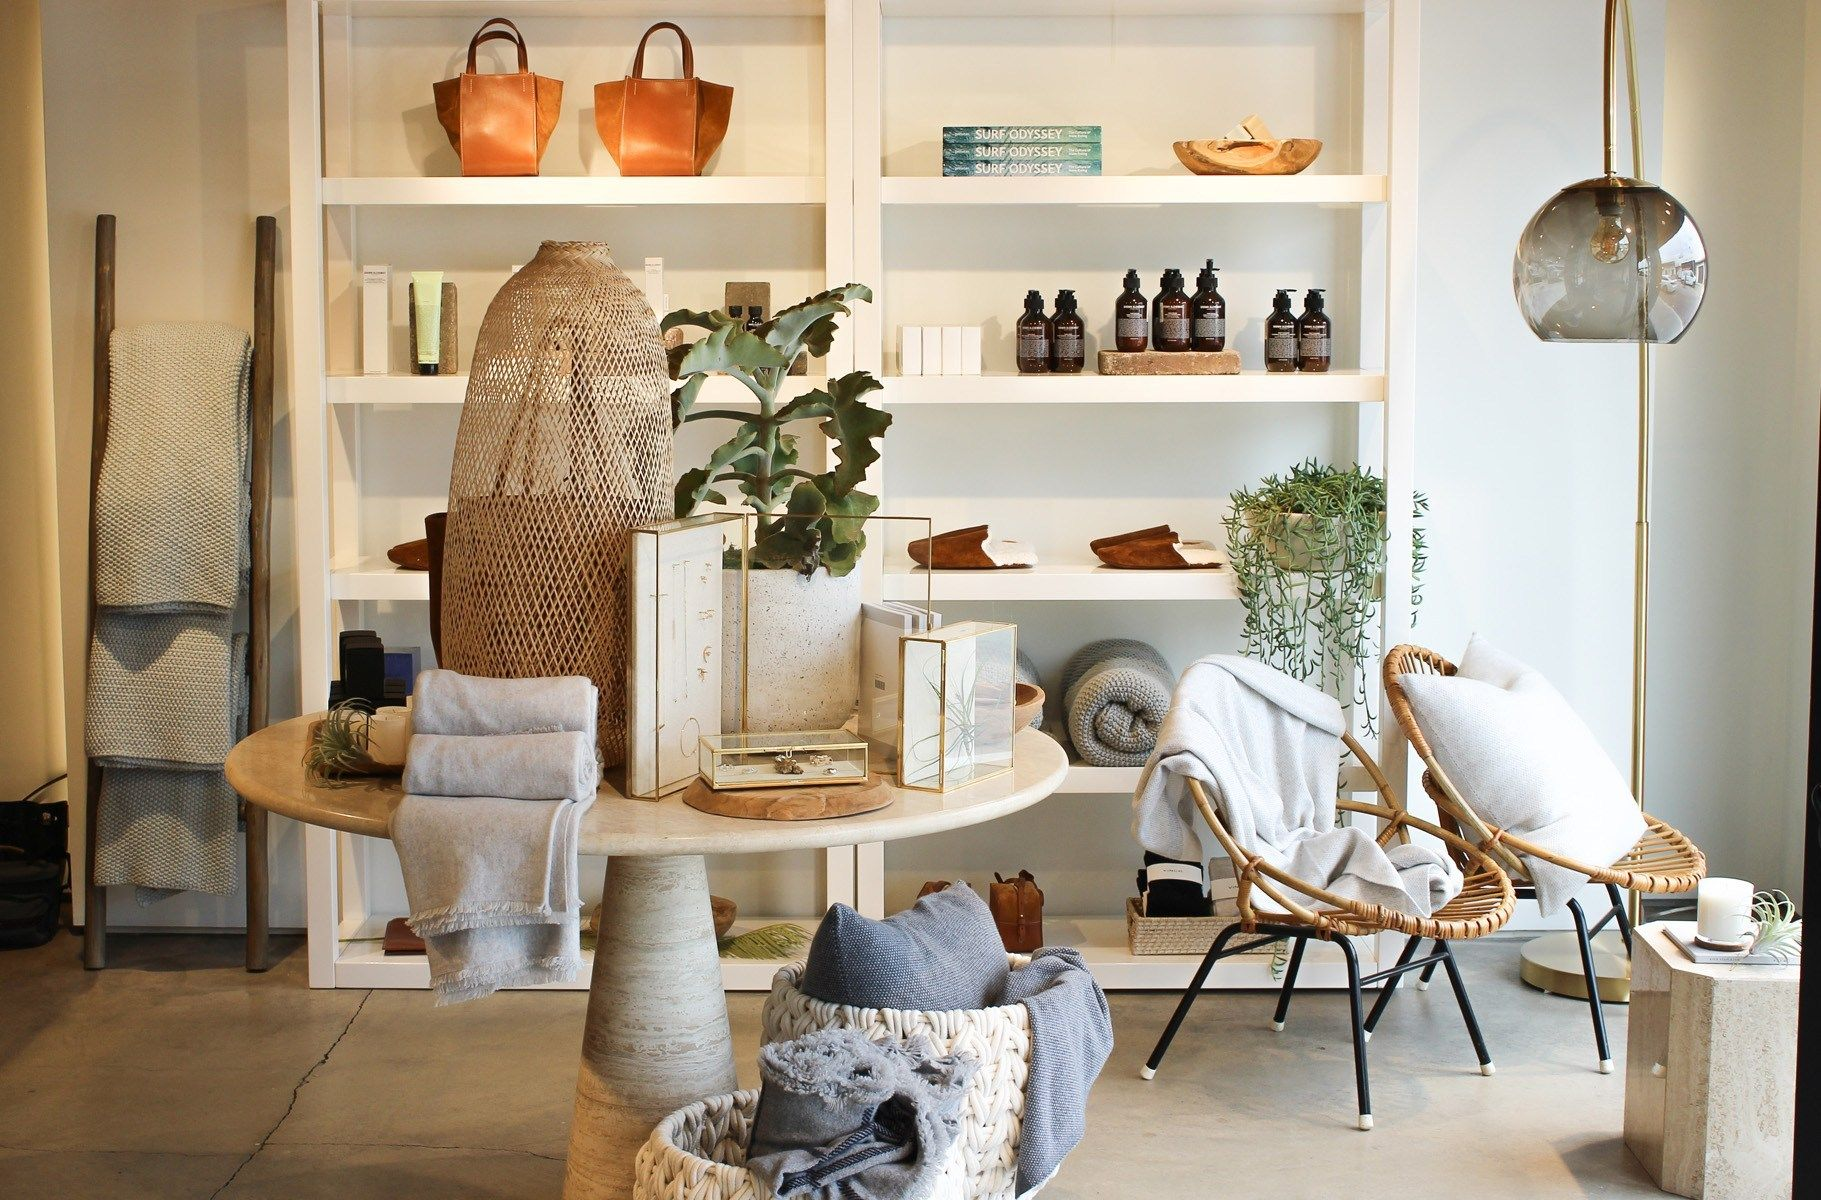 You Can Now Dress The Rest Of Your Cali Cool Abode At Vince S First Home Goods Boutique In Malibu Home Home Goods First Home